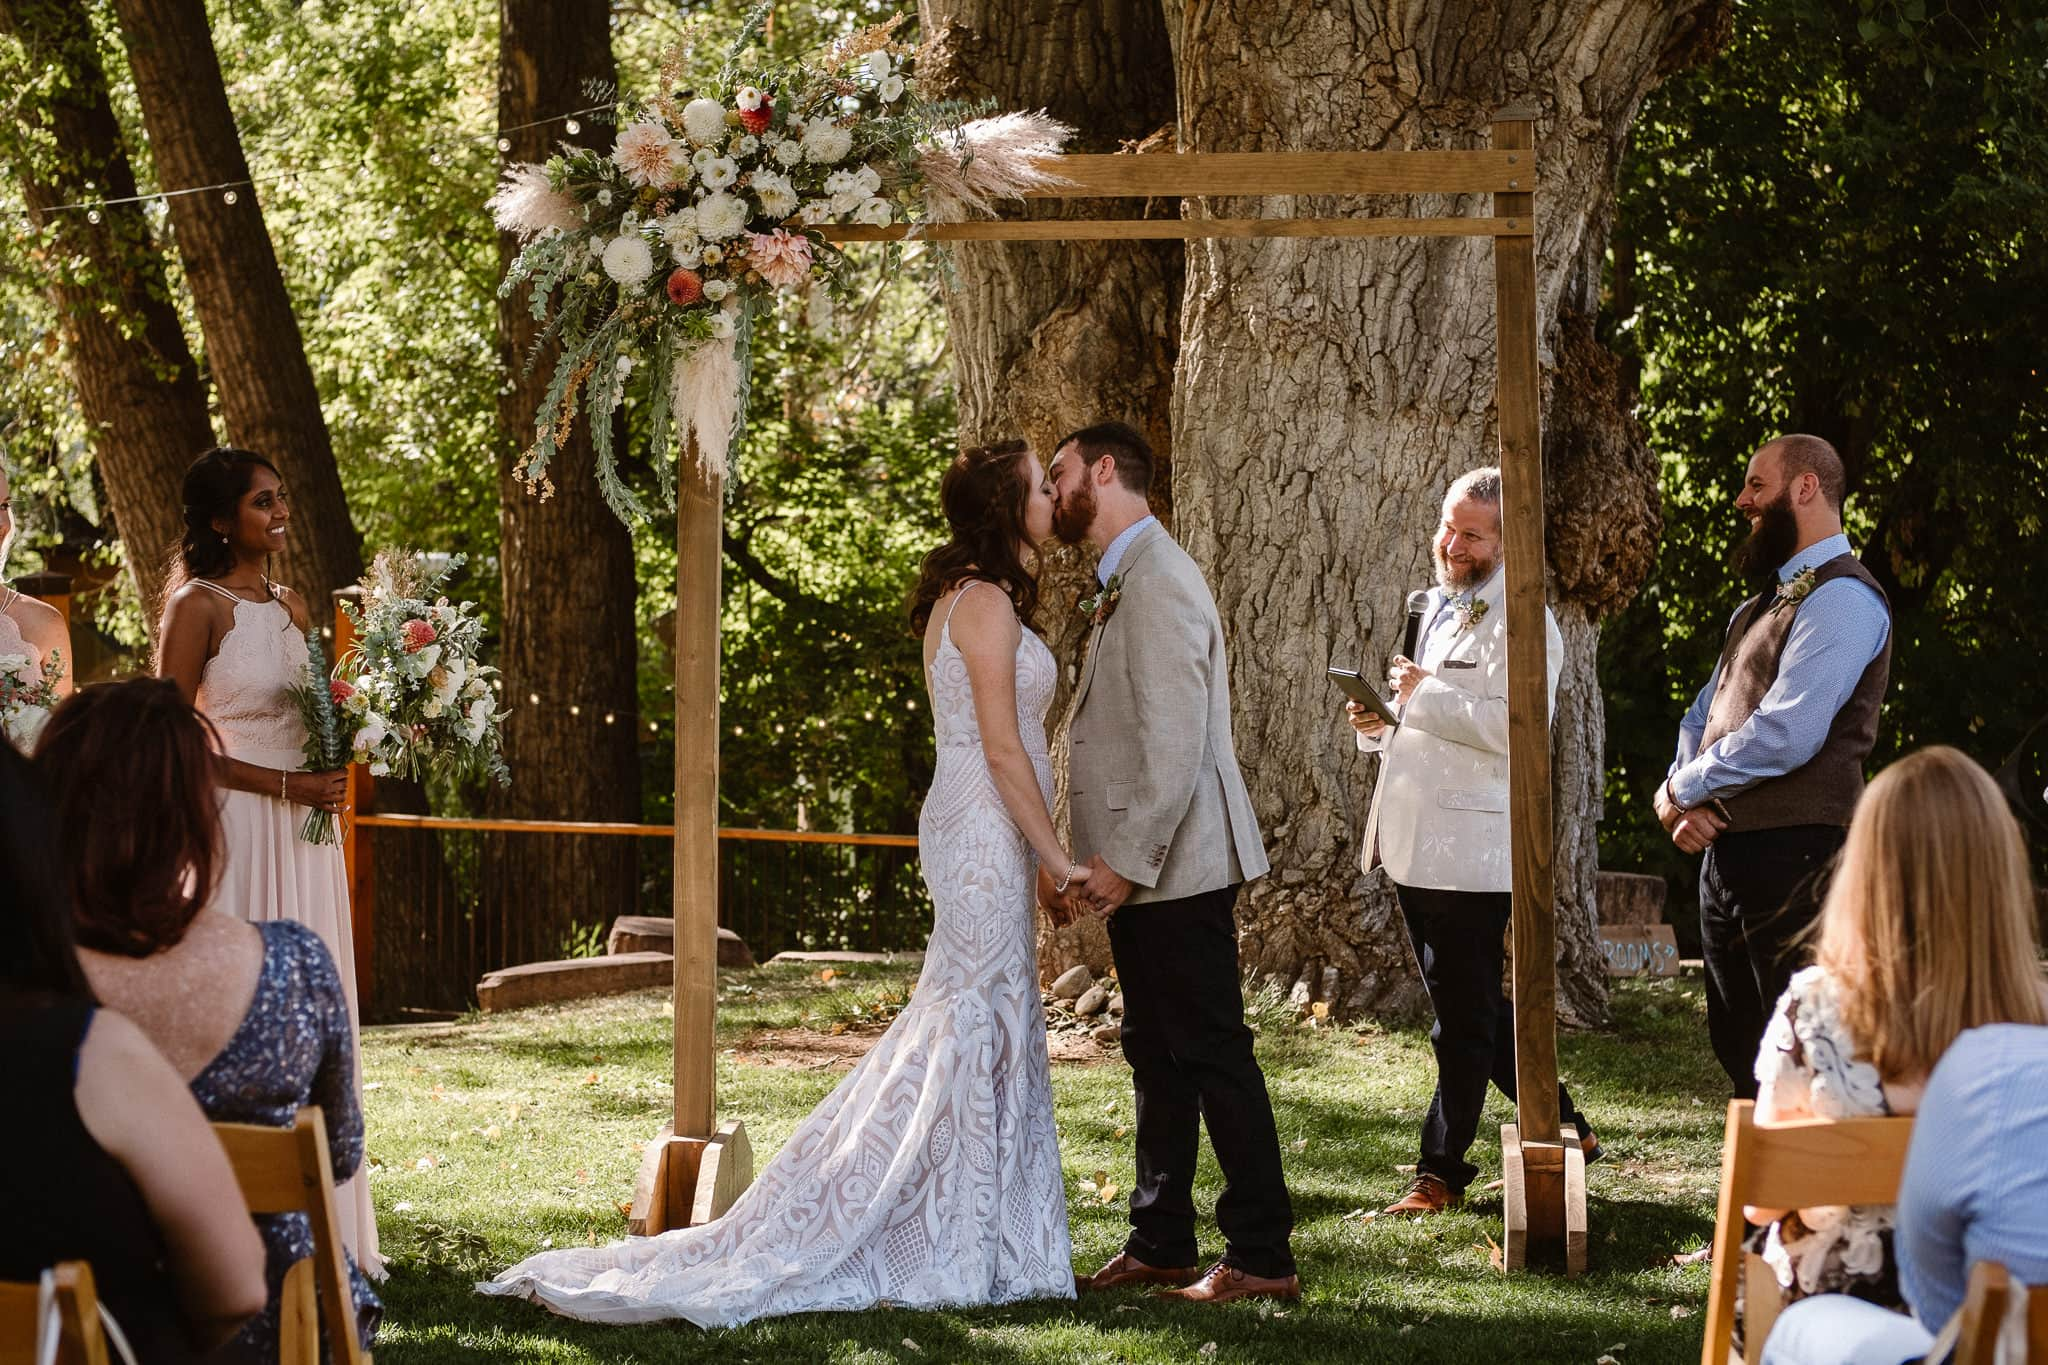 Lyons Farmette wedding photographer, Colorado intimate wedding photographer, wedding ceremony, wedding photos, first kiss